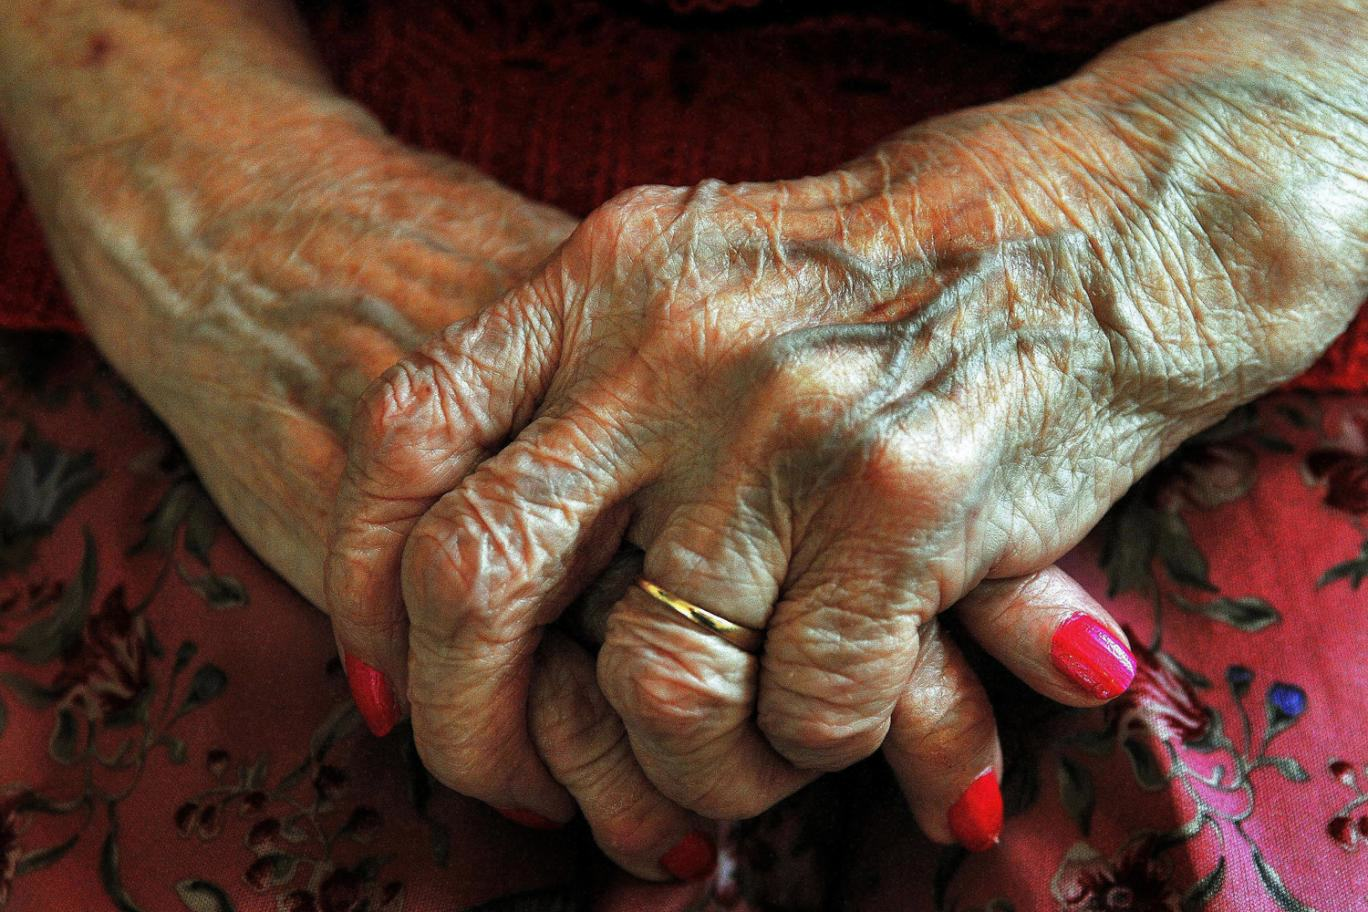 Essex Council Charging Elderly People £26 When They Fall And Need Help pensioner4